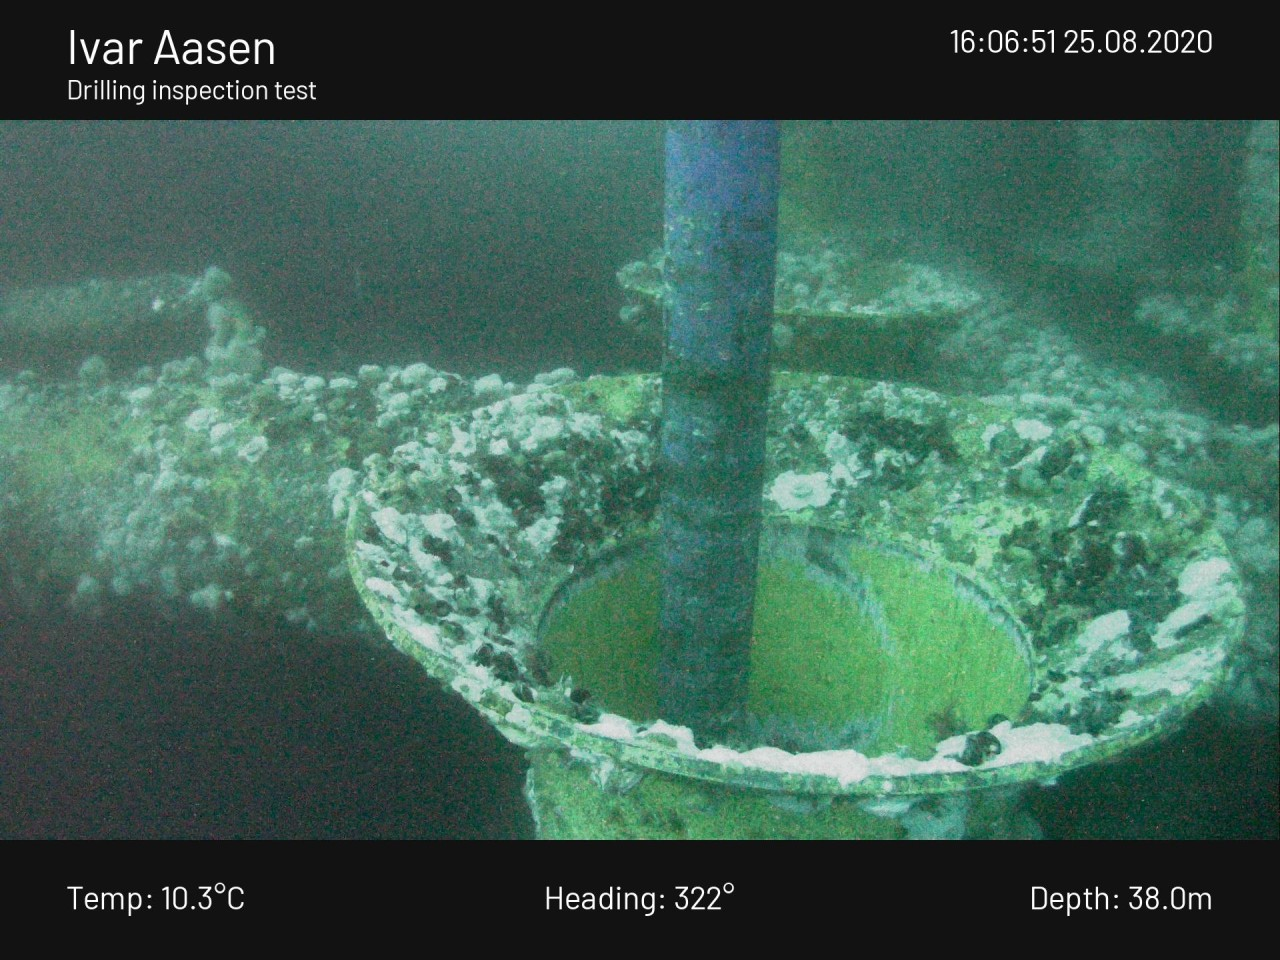 Second conductor guide at 38 m depth